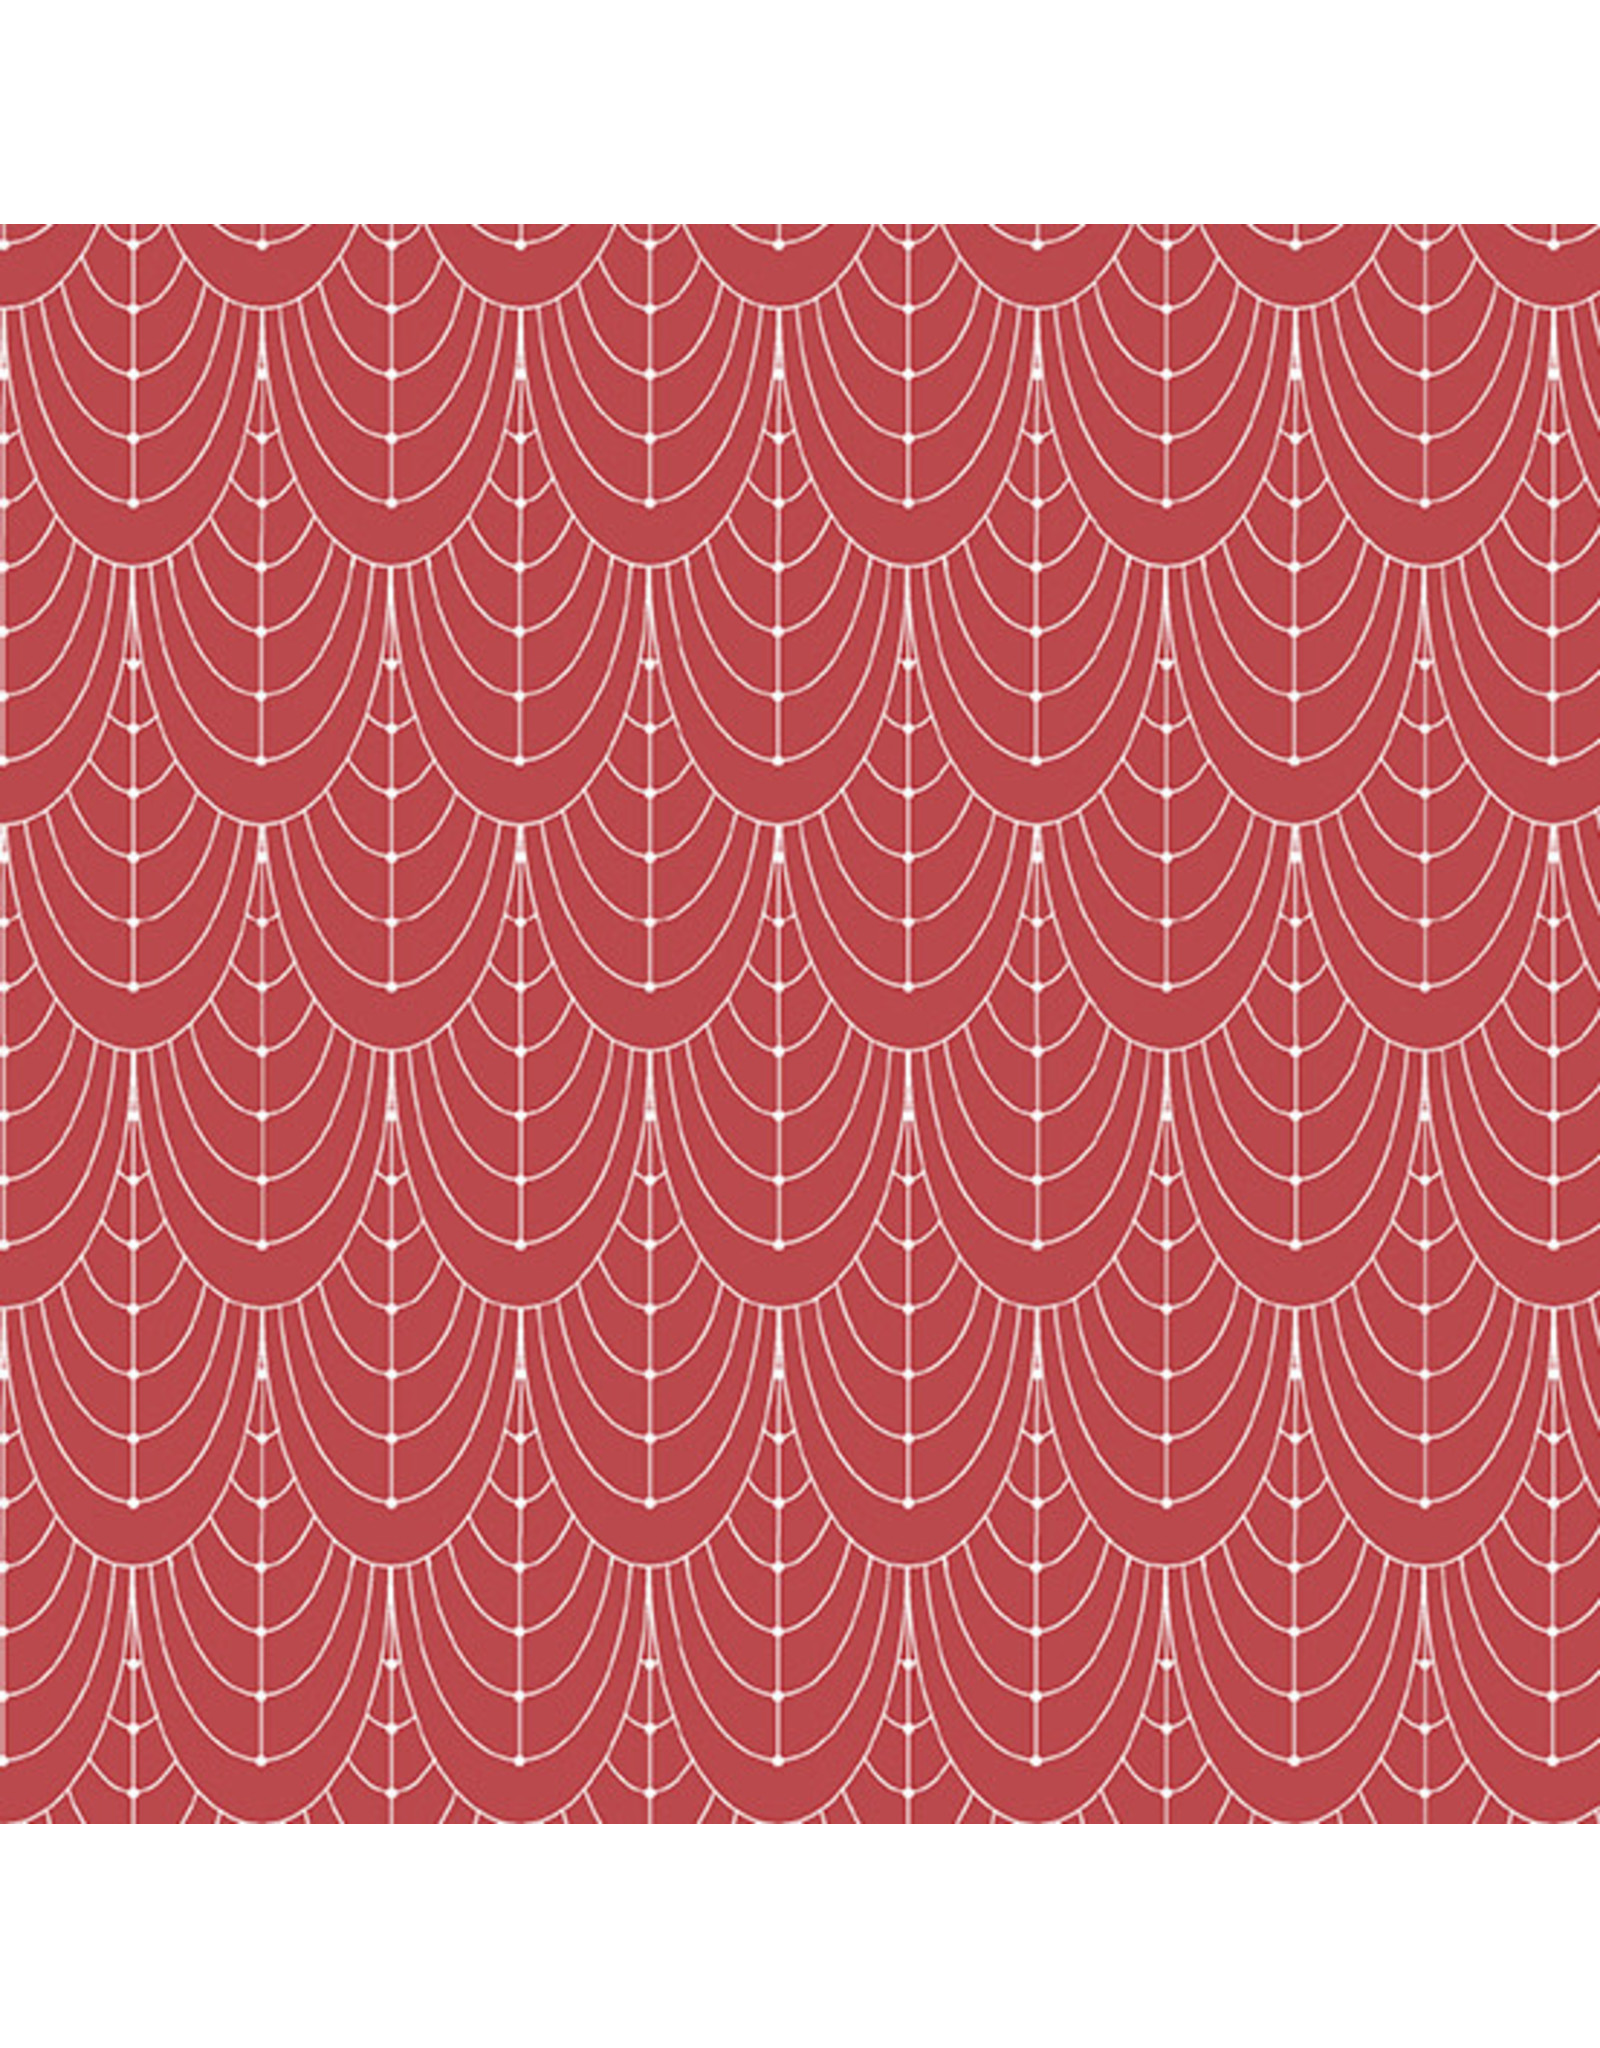 Giucy Giuce Century Prints, Deco Curtains in Barn Rose, Fabric Half-Yards